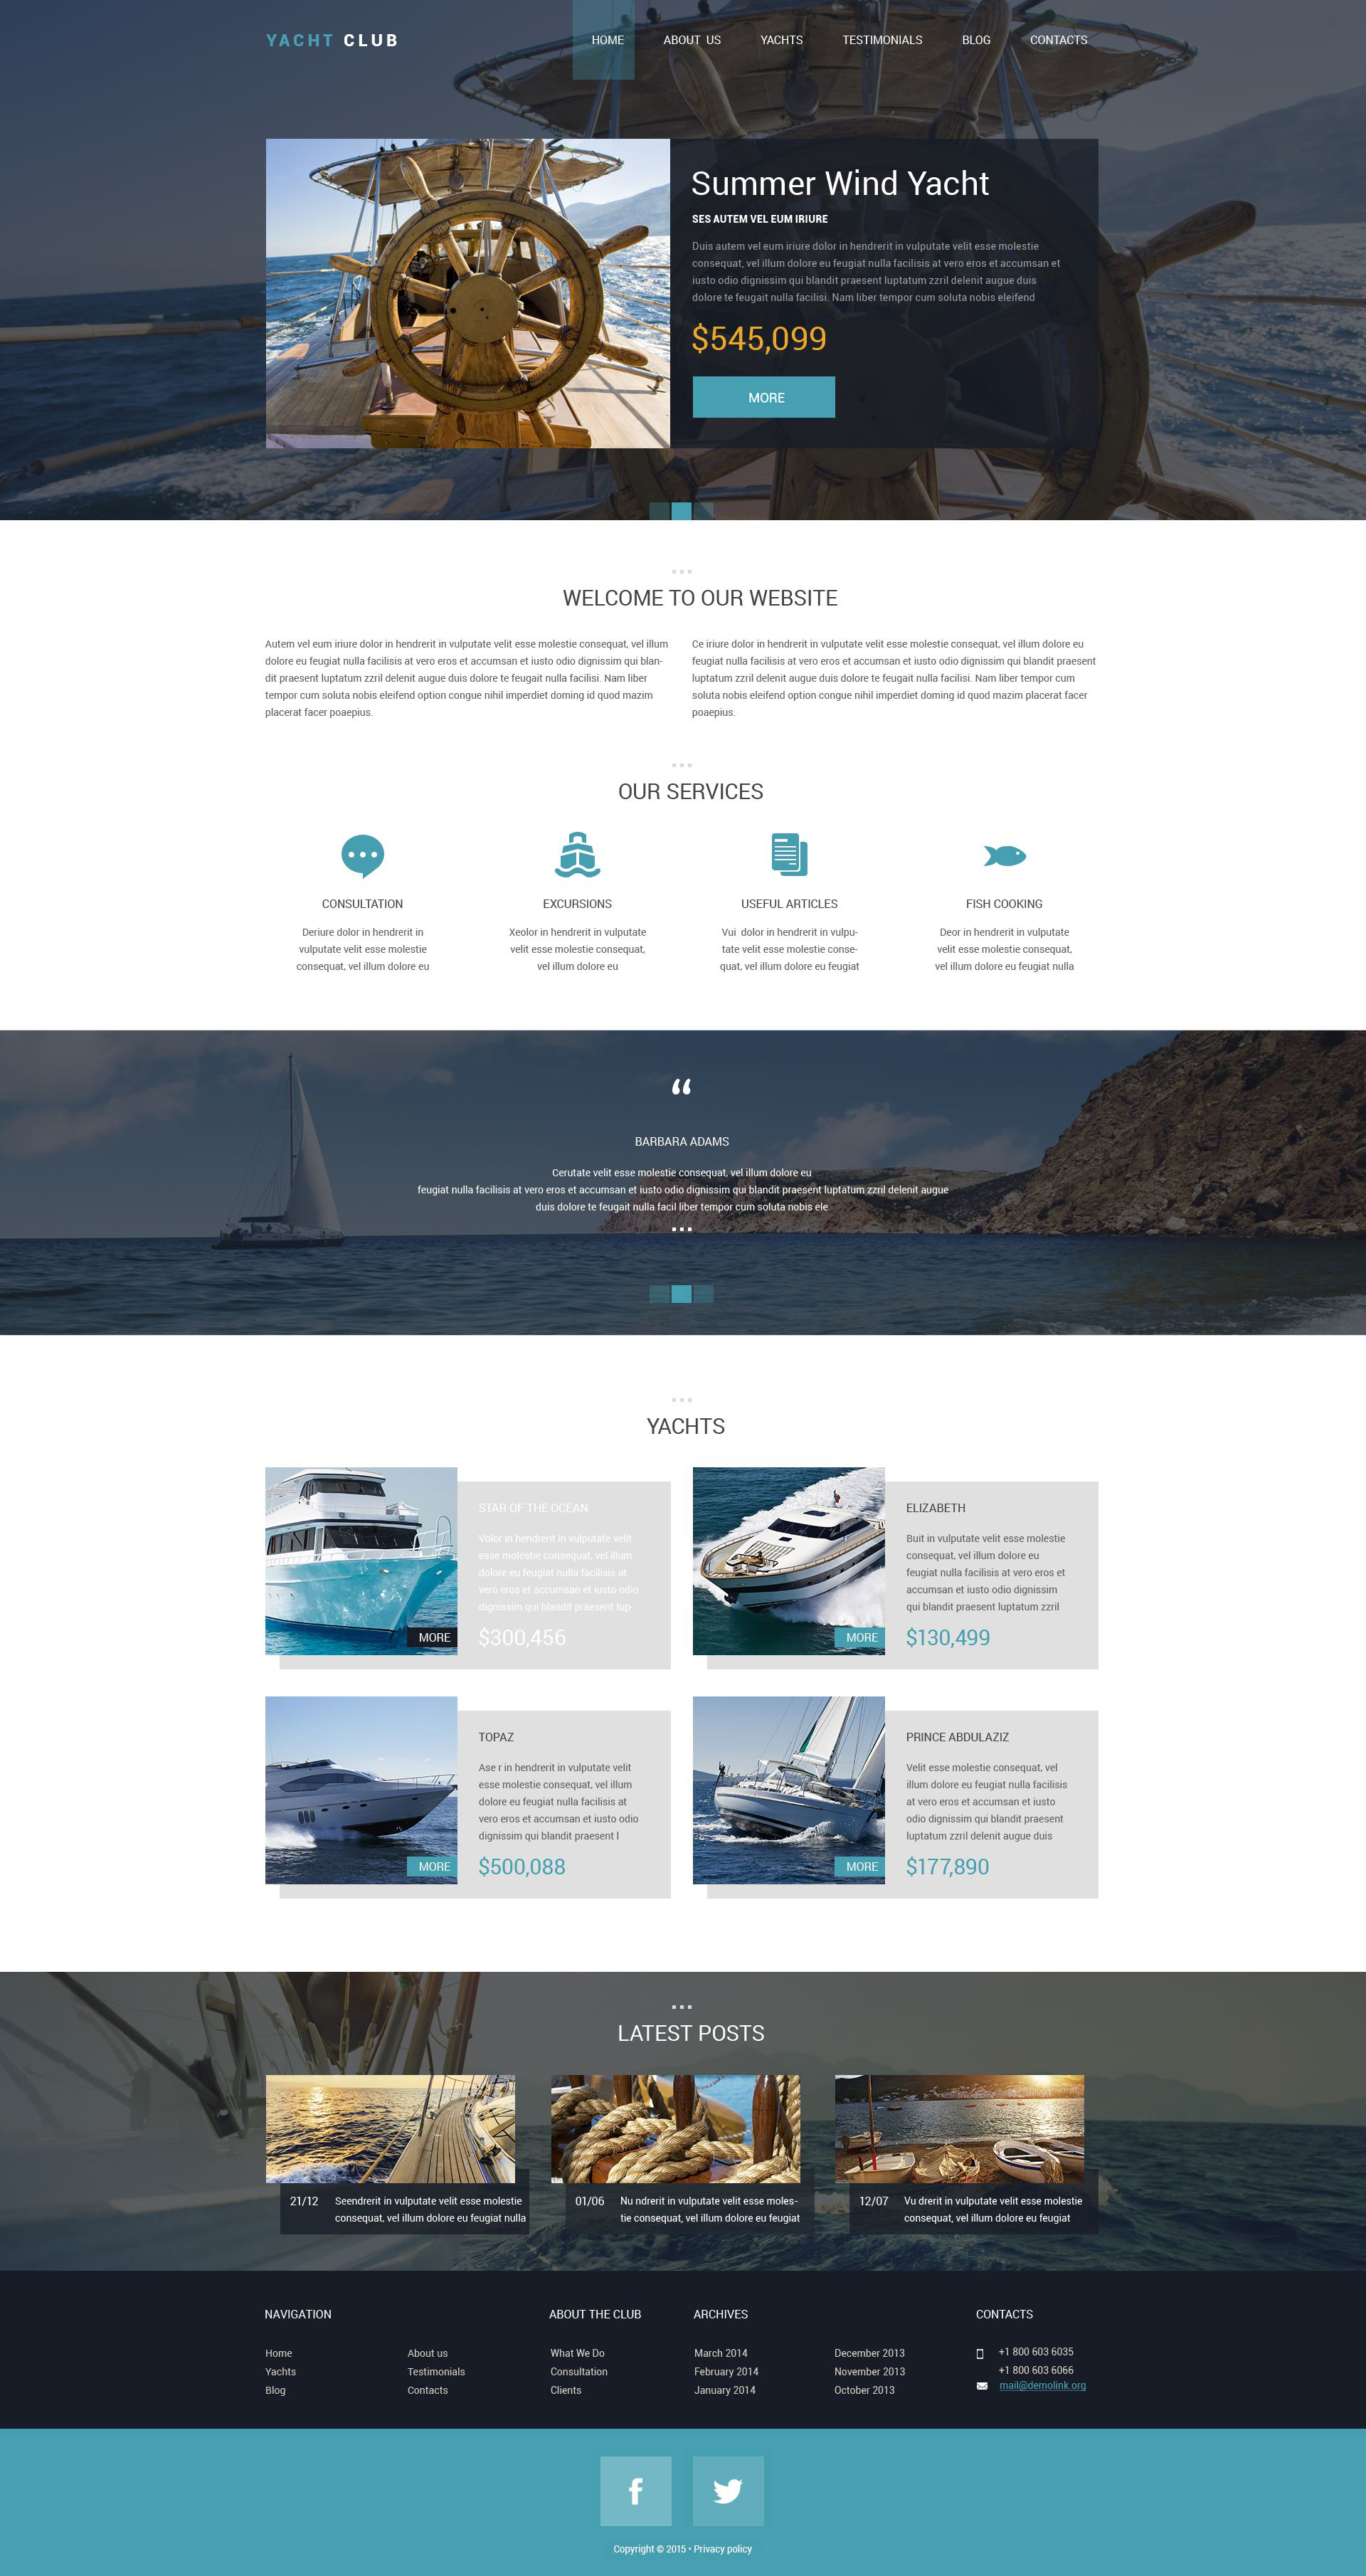 The Yacht Club Yachting Drupal Design 53349, one of the best Drupal templates of its kind (sport, most popular), also known as Yacht club yachting Drupal template, yacht Drupal template, chartering Drupal template, sport Drupal template, yacht club Drupal template, steering Drupal template, control Drupal template, anchor Drupal template, sea Drupal template, team Drupal template, award Drupal template, regatta school Drupal template, training Drupal template, trainer Drupal template, achievement Drupal template, activities Drupal template, racing and related with Yacht club yachting, yacht, chartering, sport, yacht club, steering, control, anchor, sea, team, award, regatta school, training, trainer, achievement, activities, racing, etc.